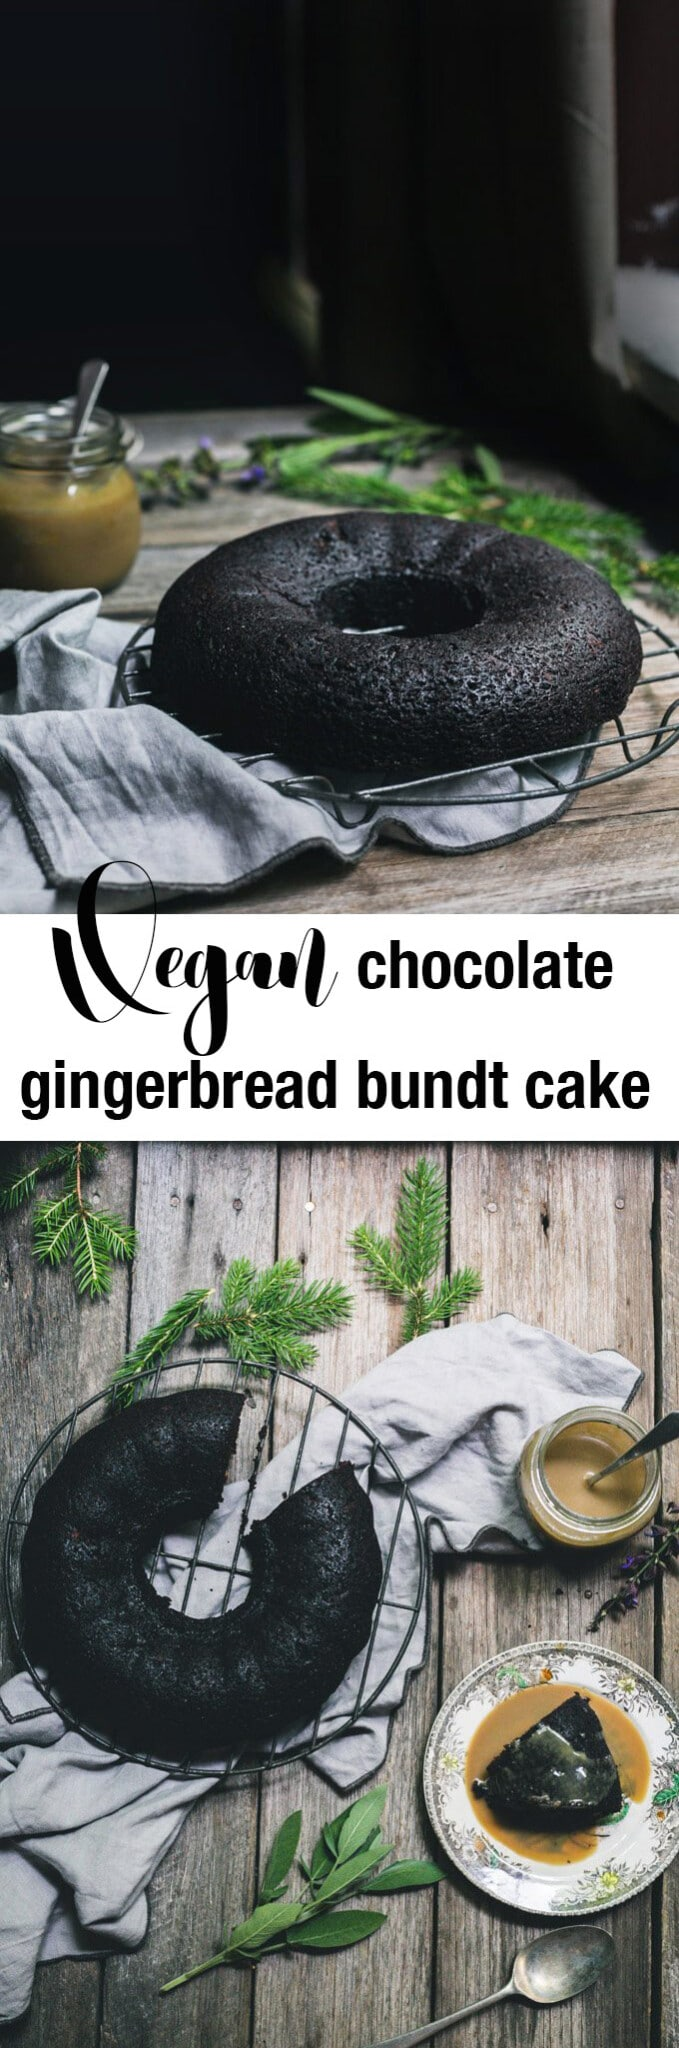 Two images of chocolate bundt cake with text